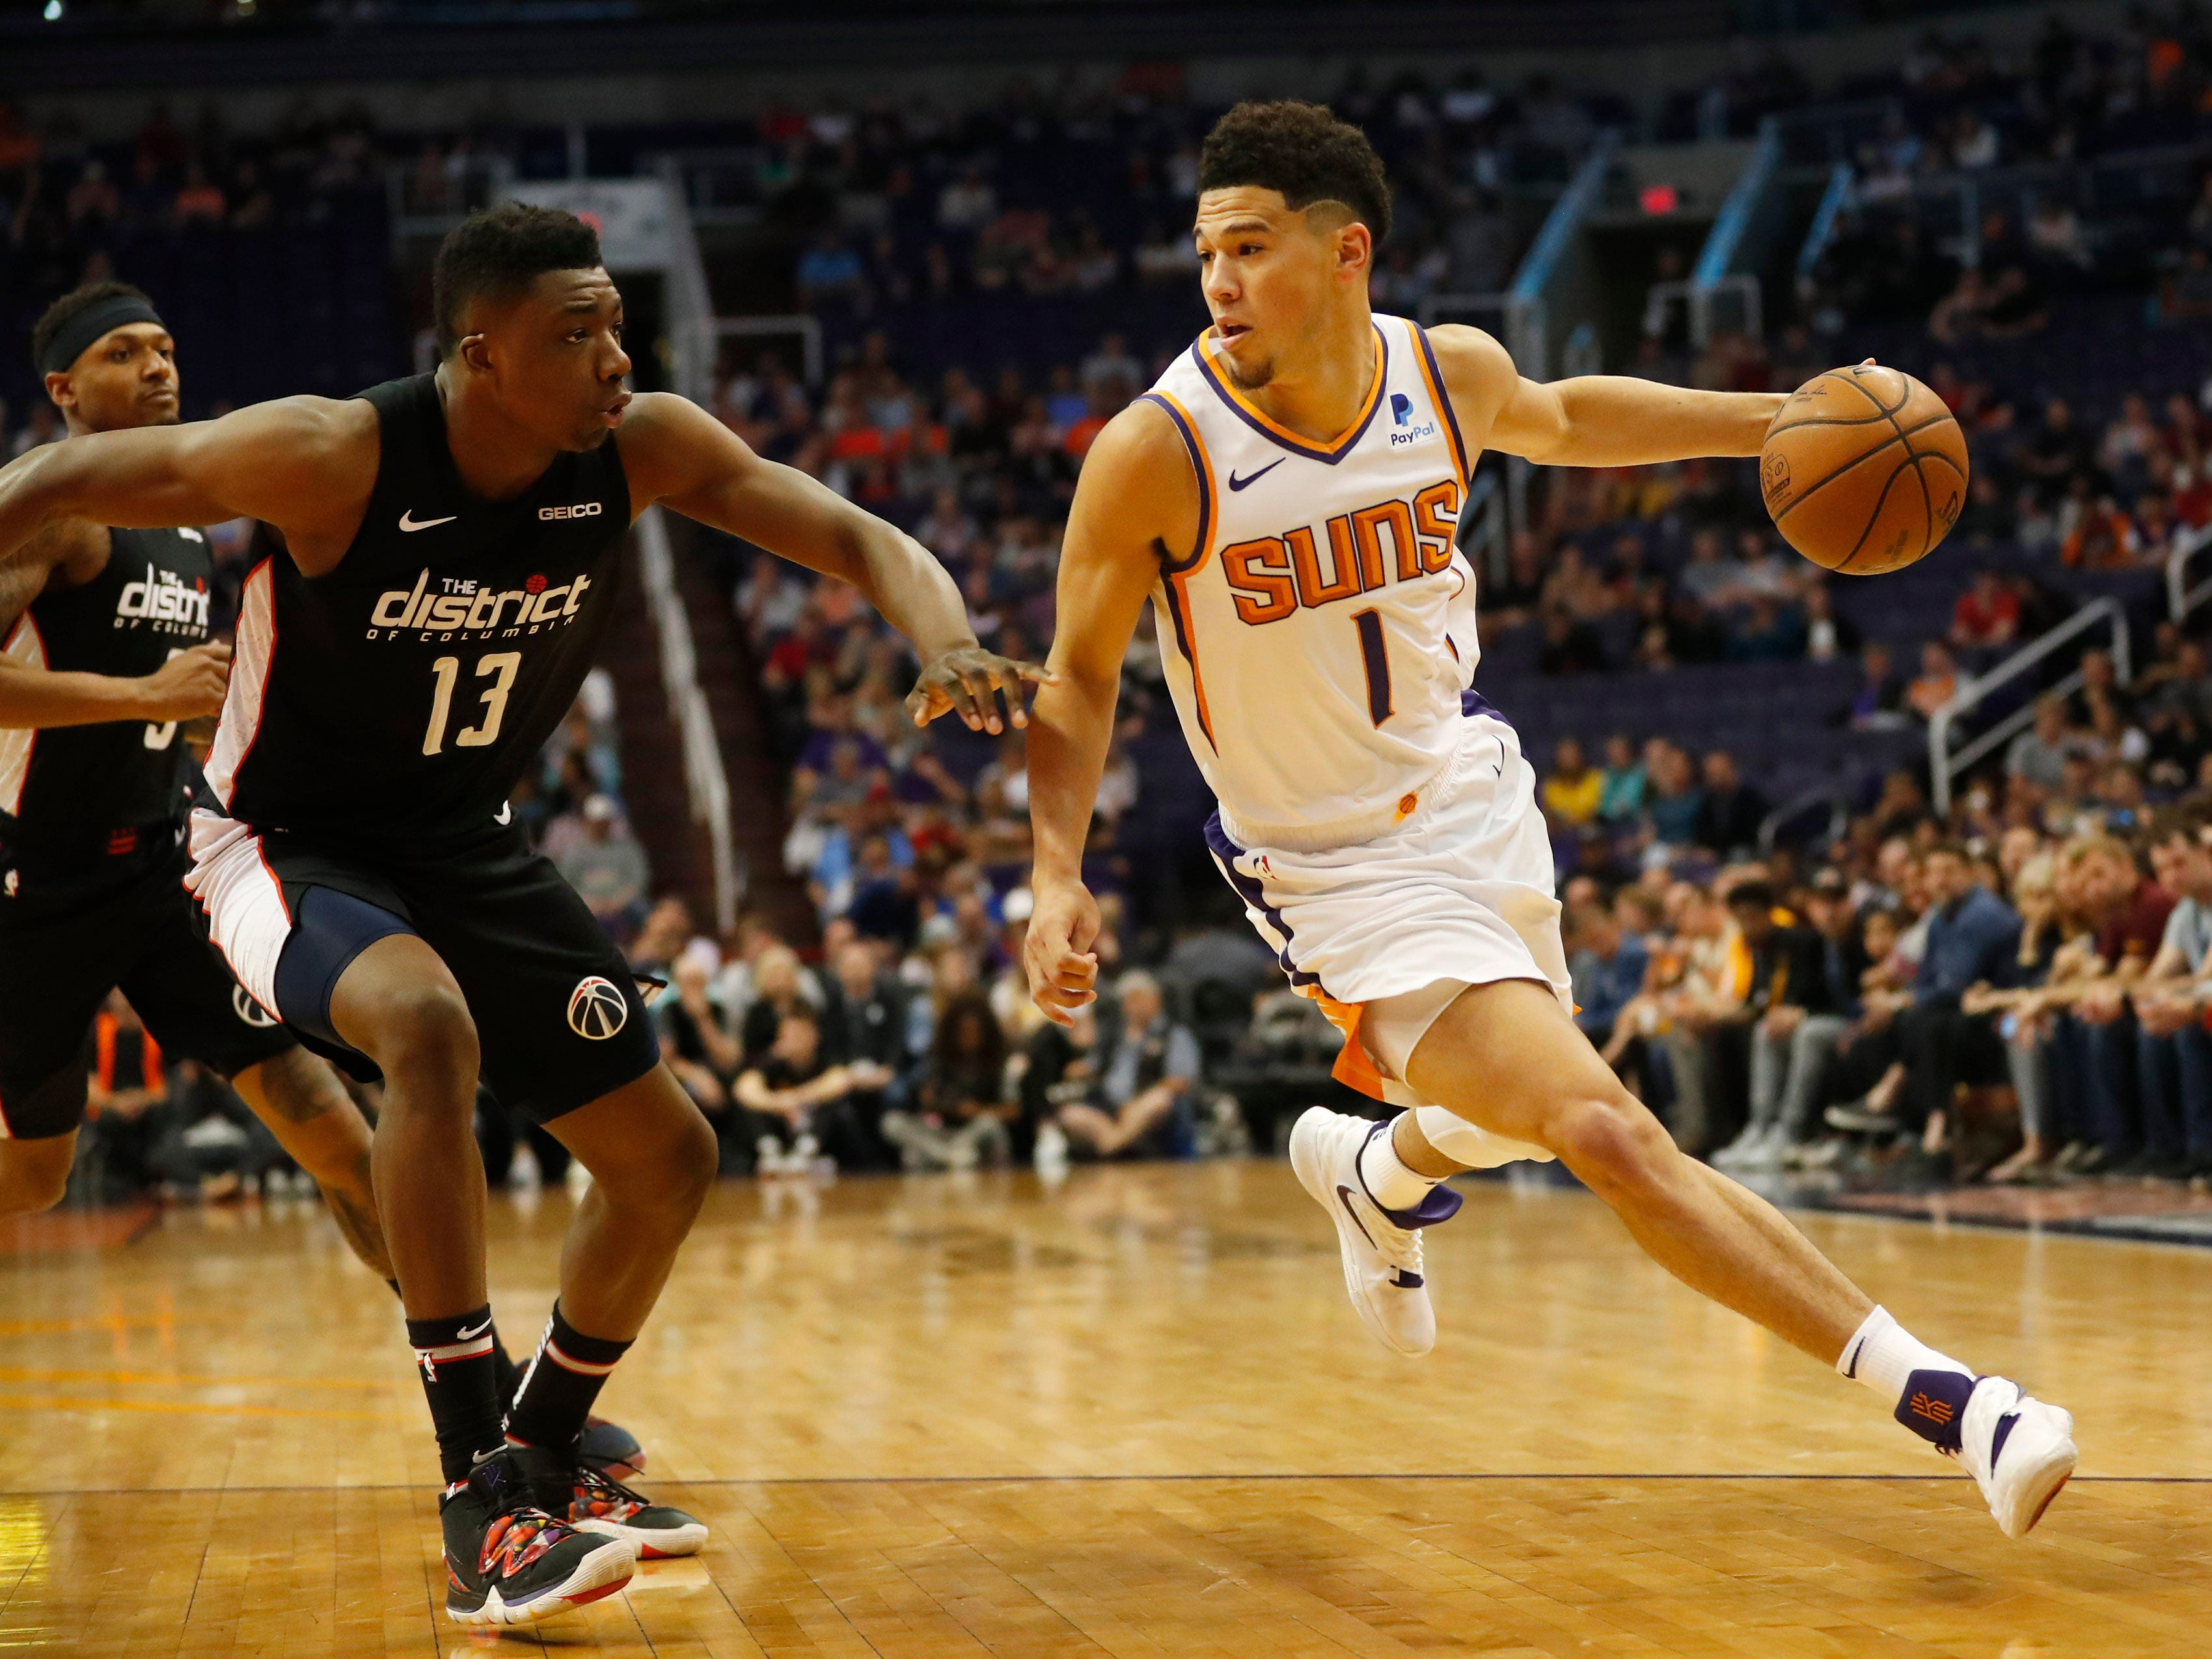 Phoenix Suns guard Devin Booker (1) is defended by Washington Wizards center Thomas Bryant (13) during the first quarter in Phoenix March 27, 2019.